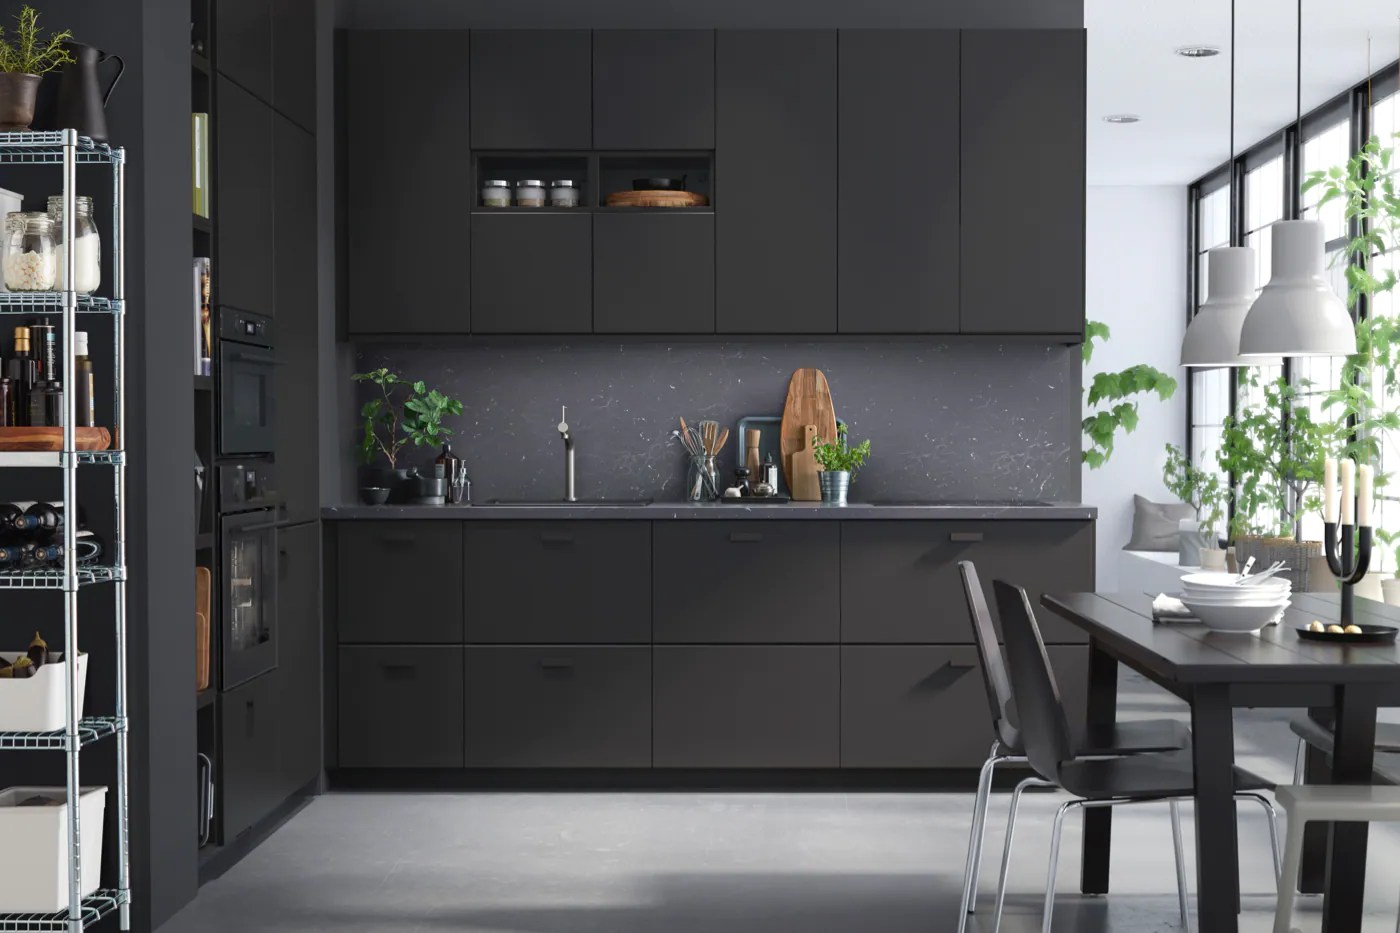 raffrollo k che ikea raffrollo k che steckdosen k che sp lbecken ikea. Black Bedroom Furniture Sets. Home Design Ideas